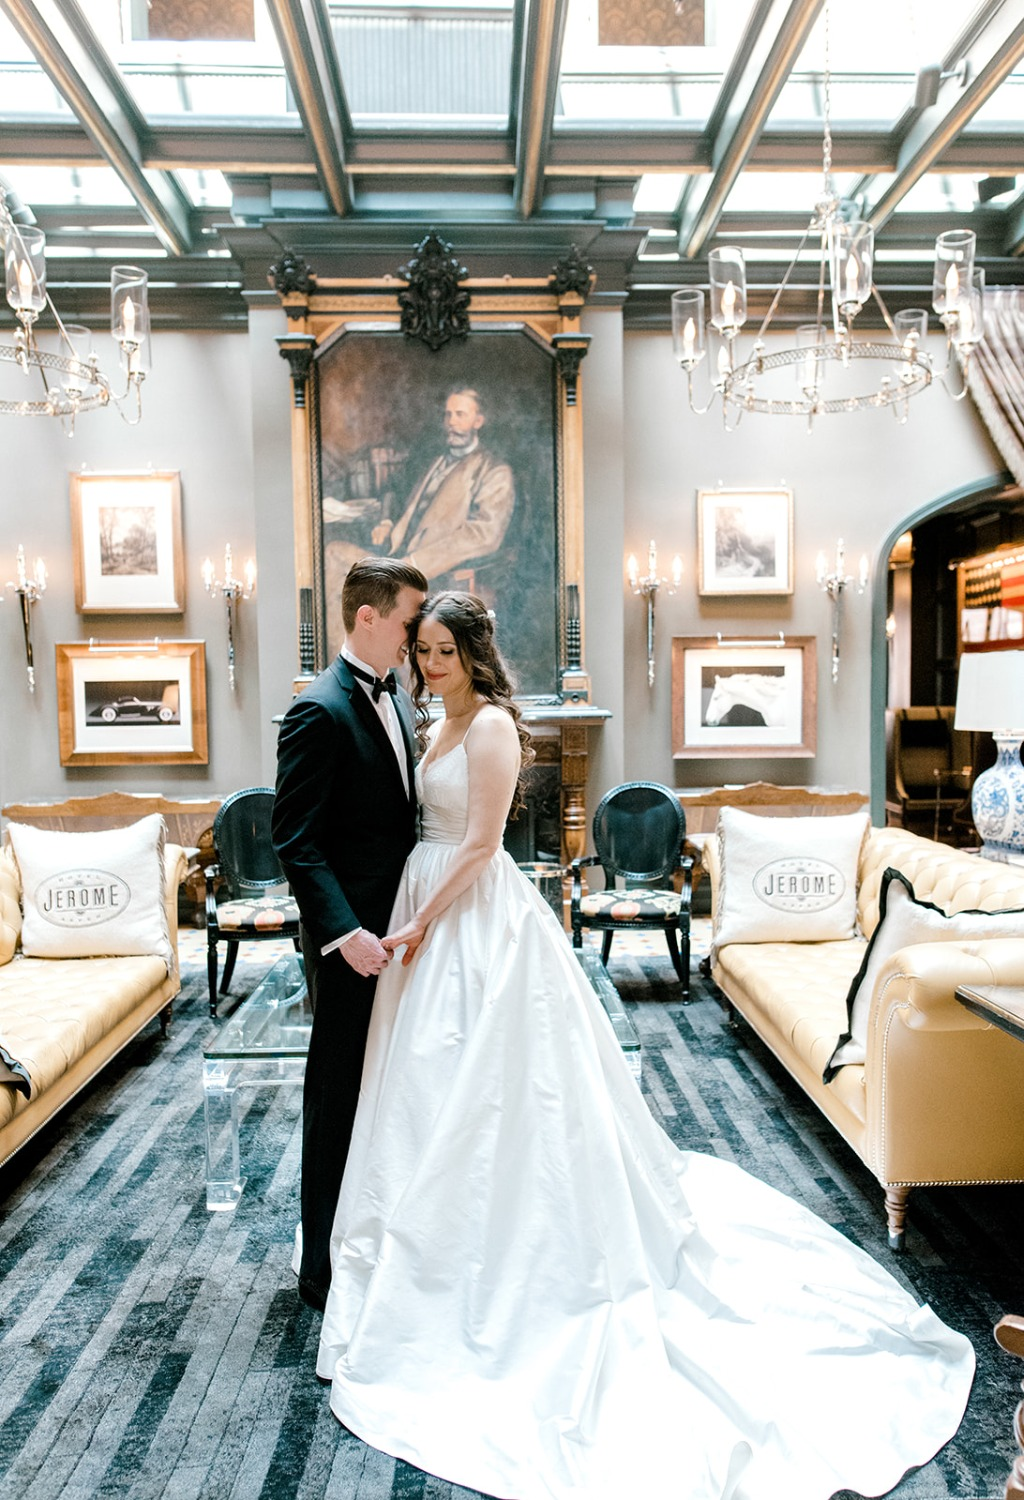 ERICA + NICK'S COLORADO WEDDING